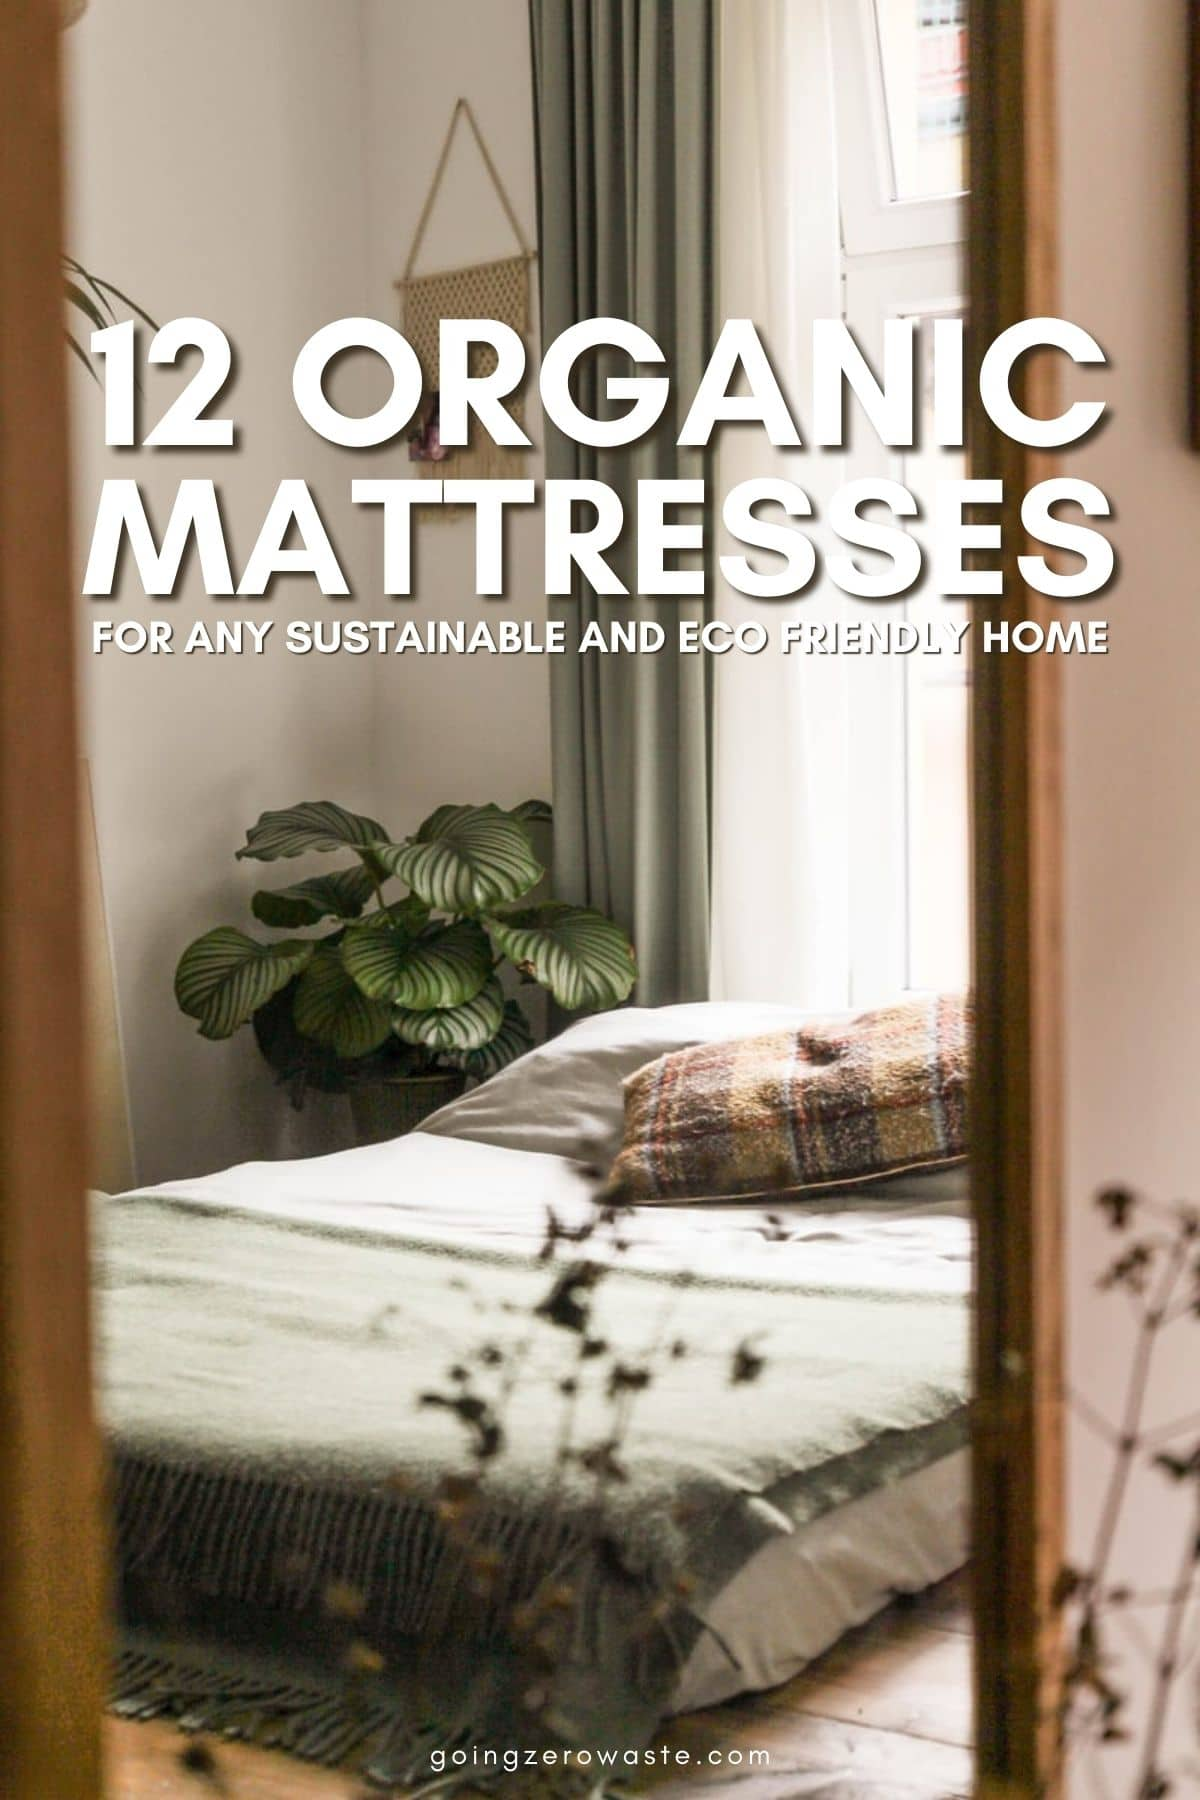 12 Organic Mattresses for any Sustainable and Eco Friendly Home